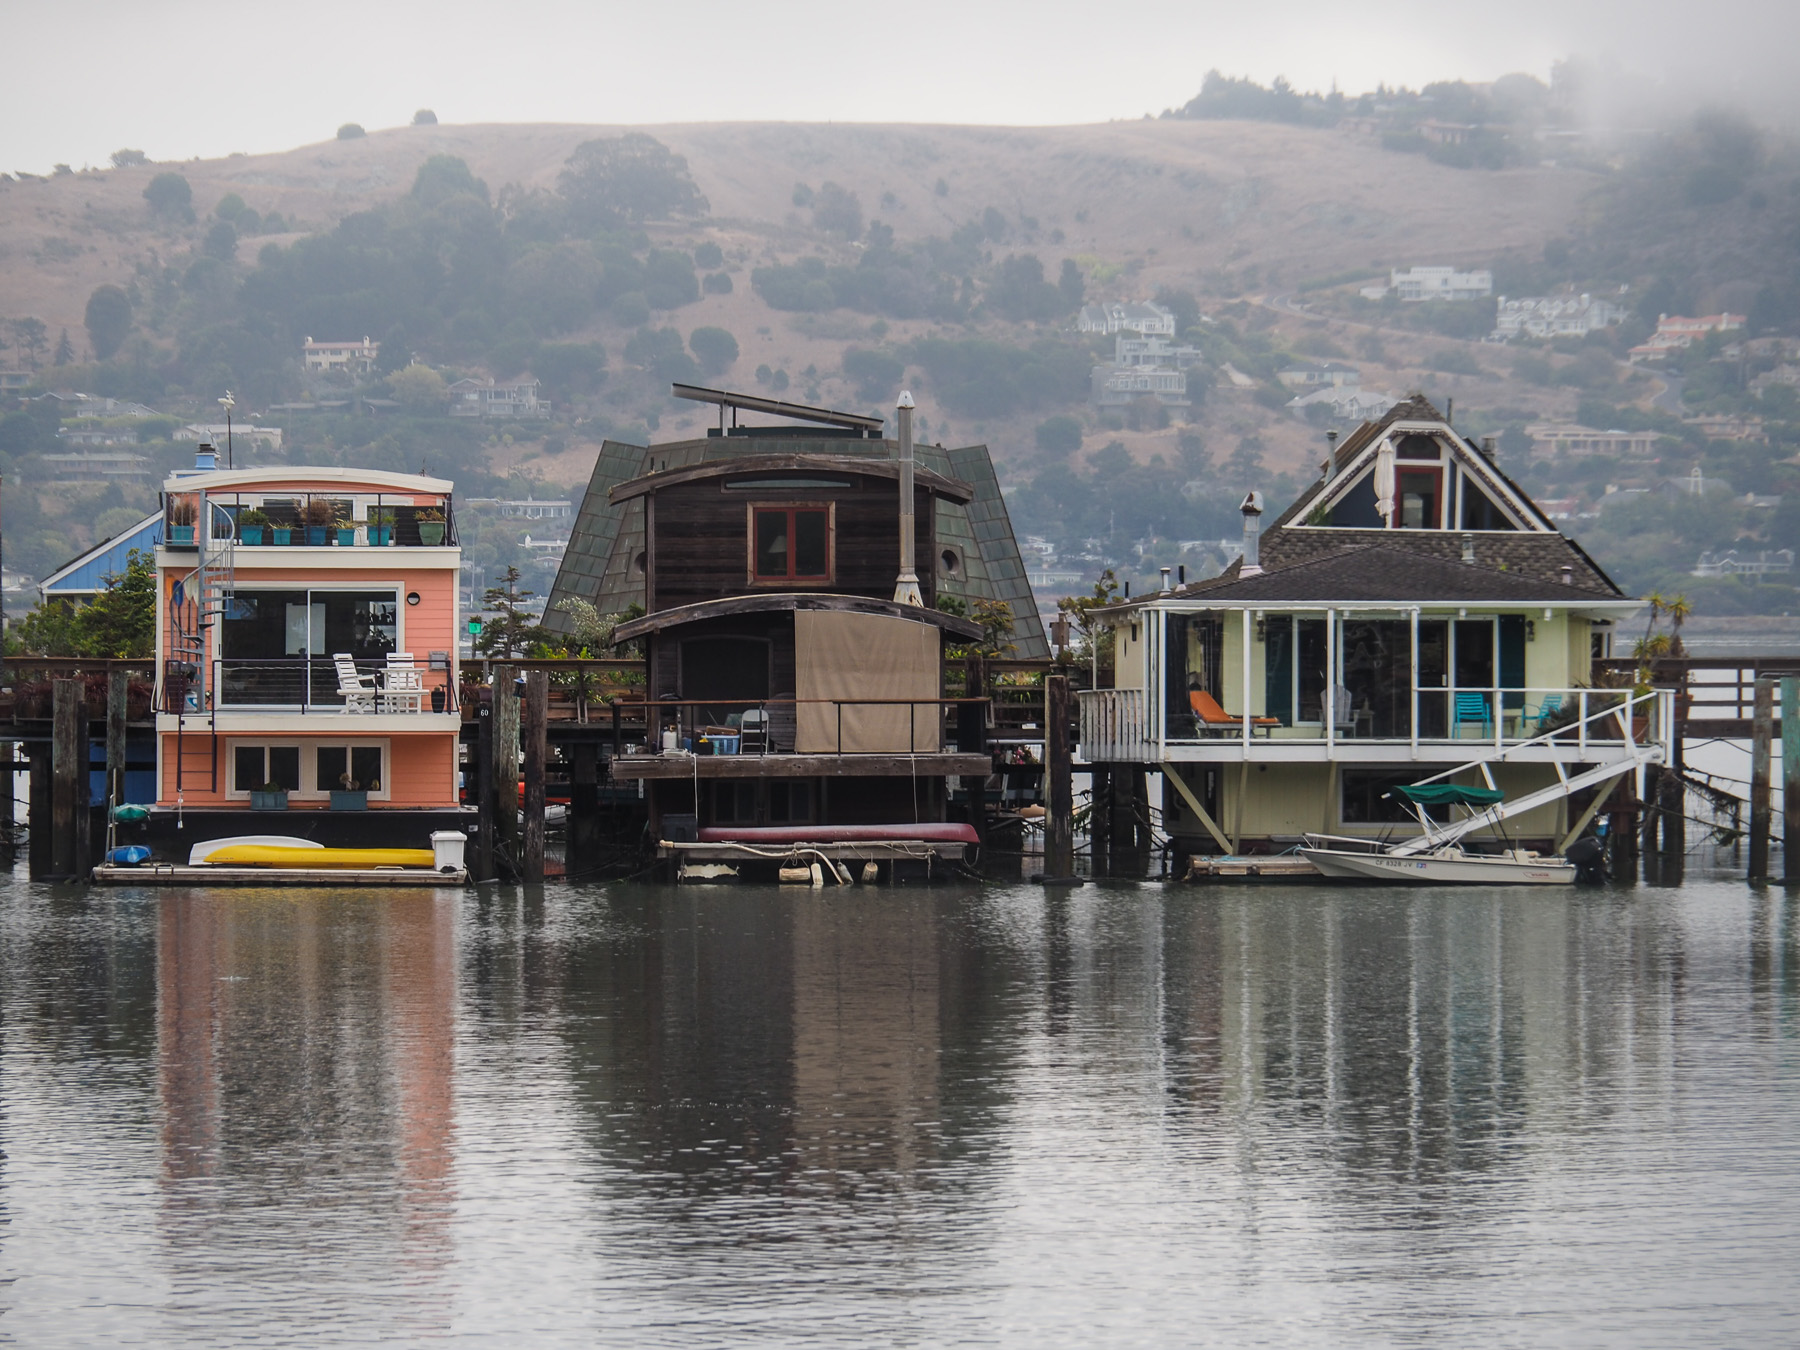 Hausboote in Sausalito